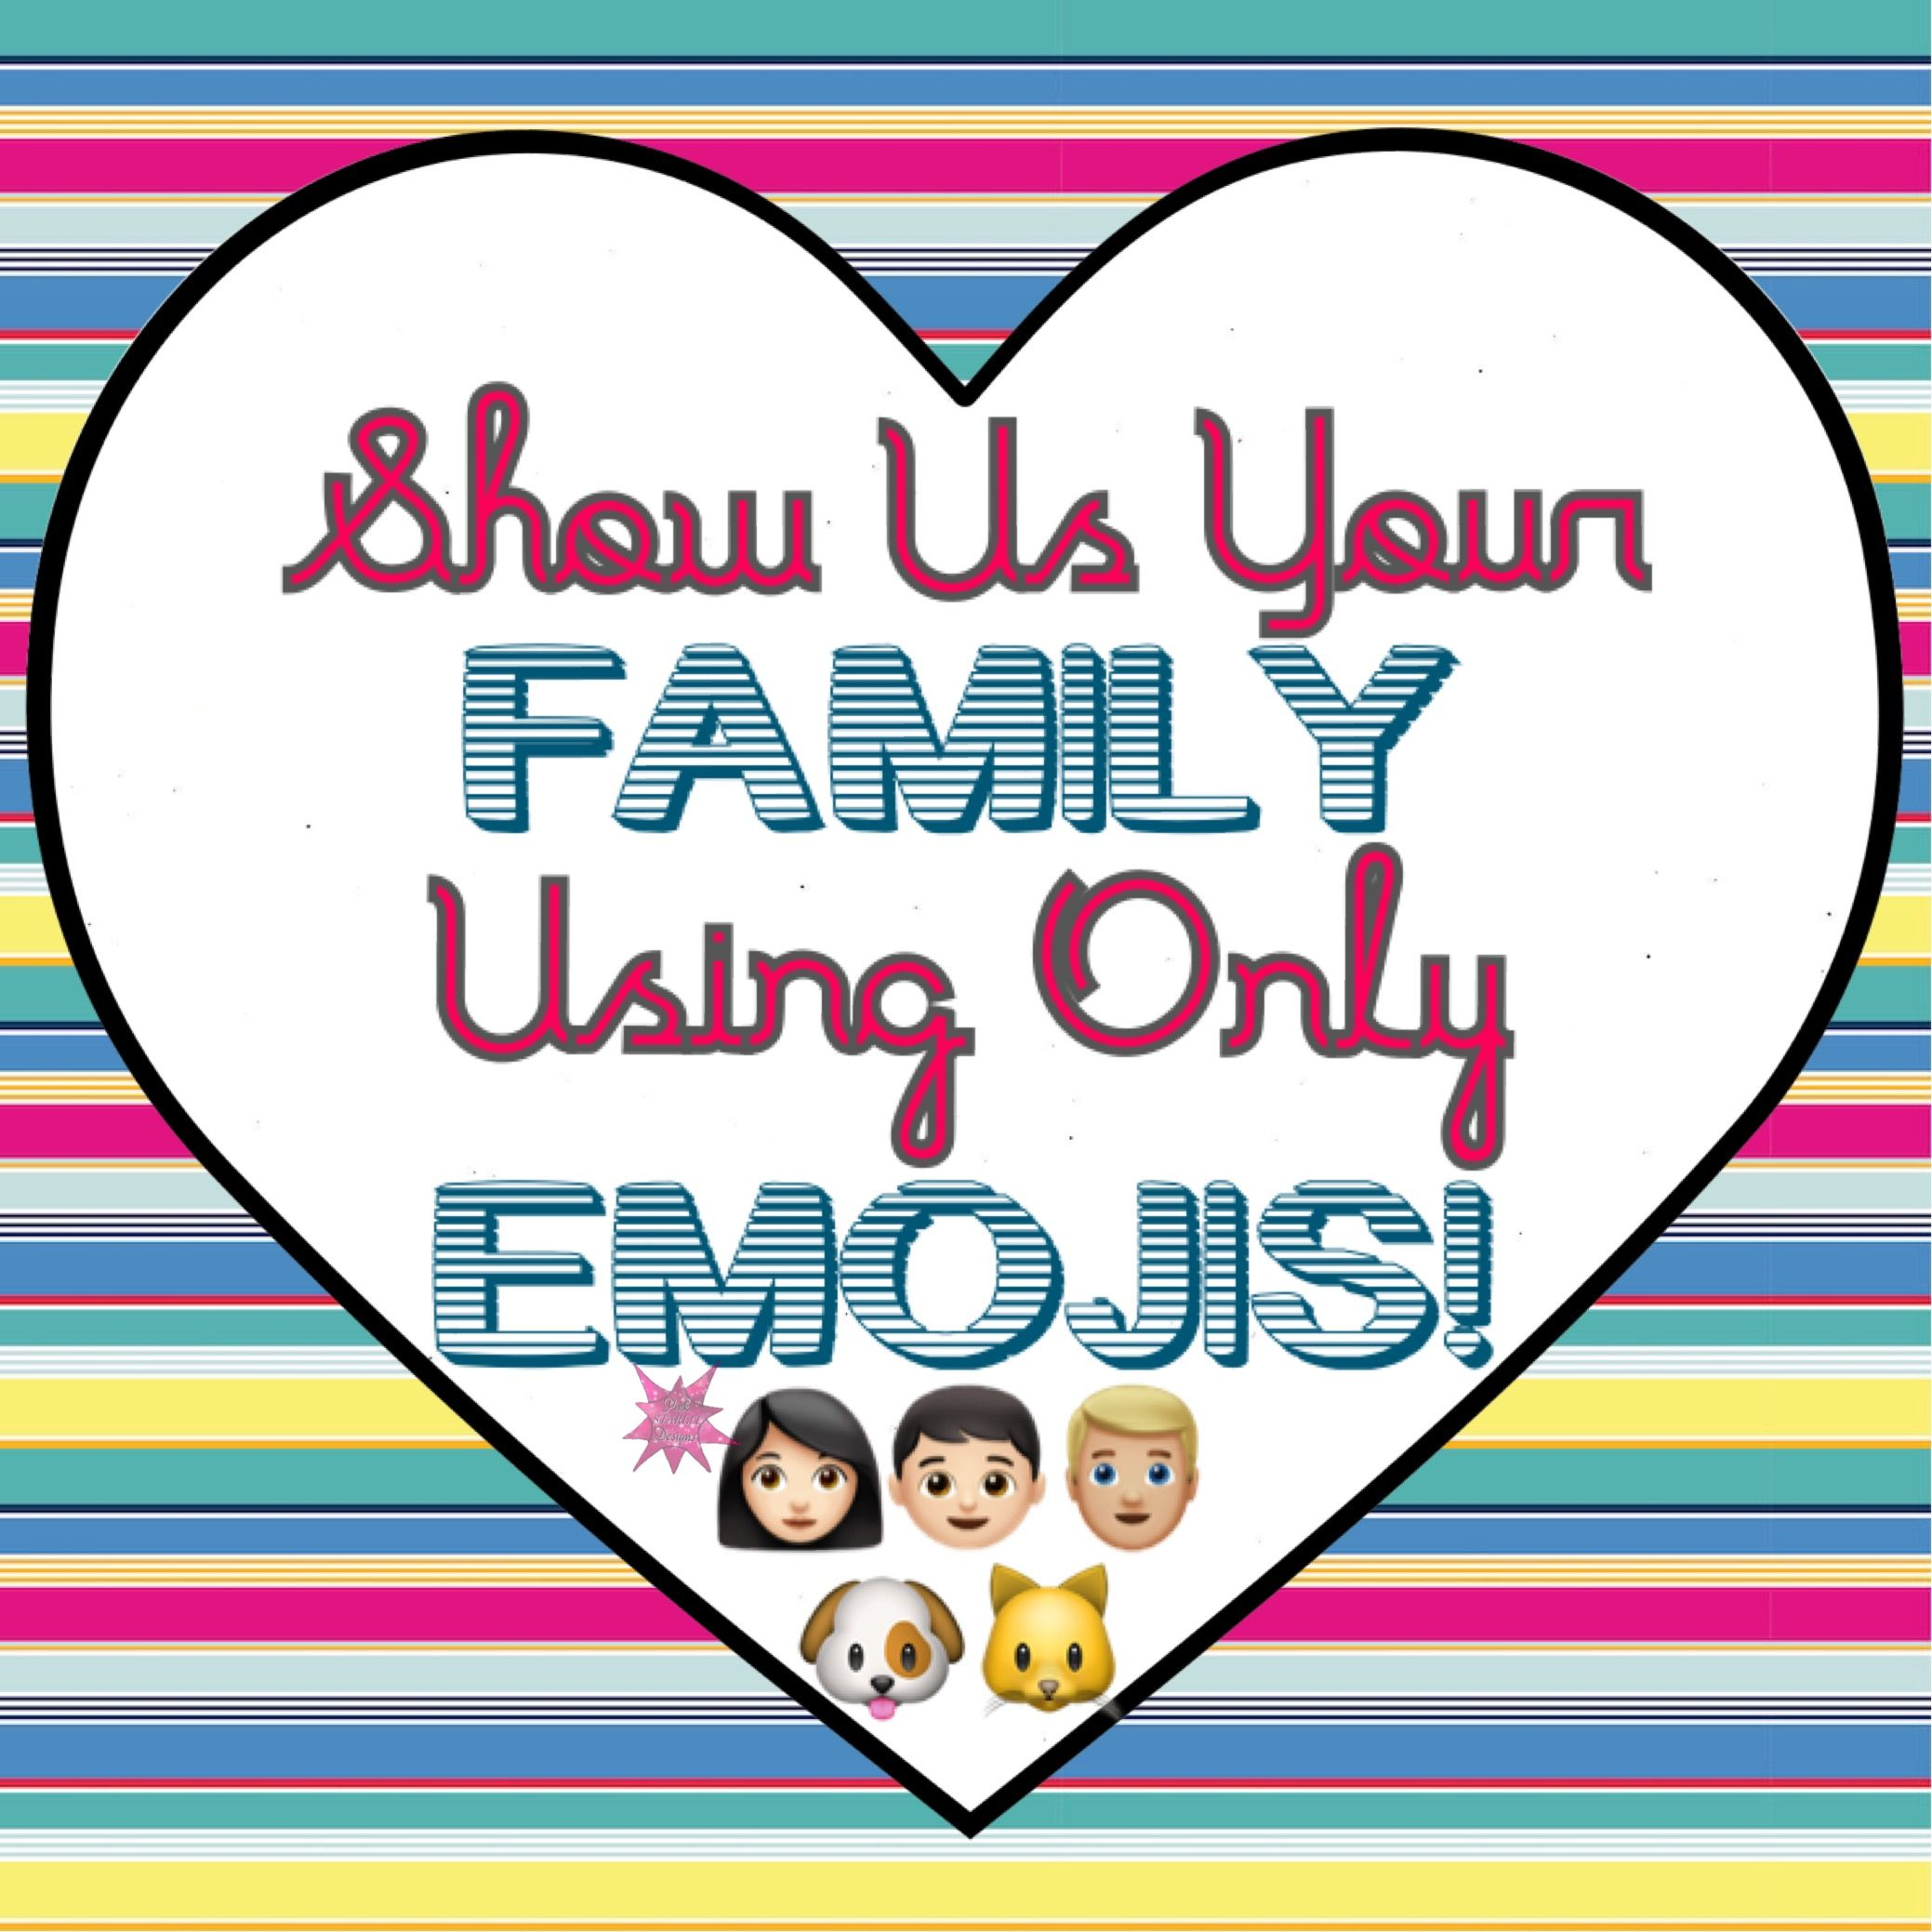 Interactive graphic for VIP Facebook group using emojis